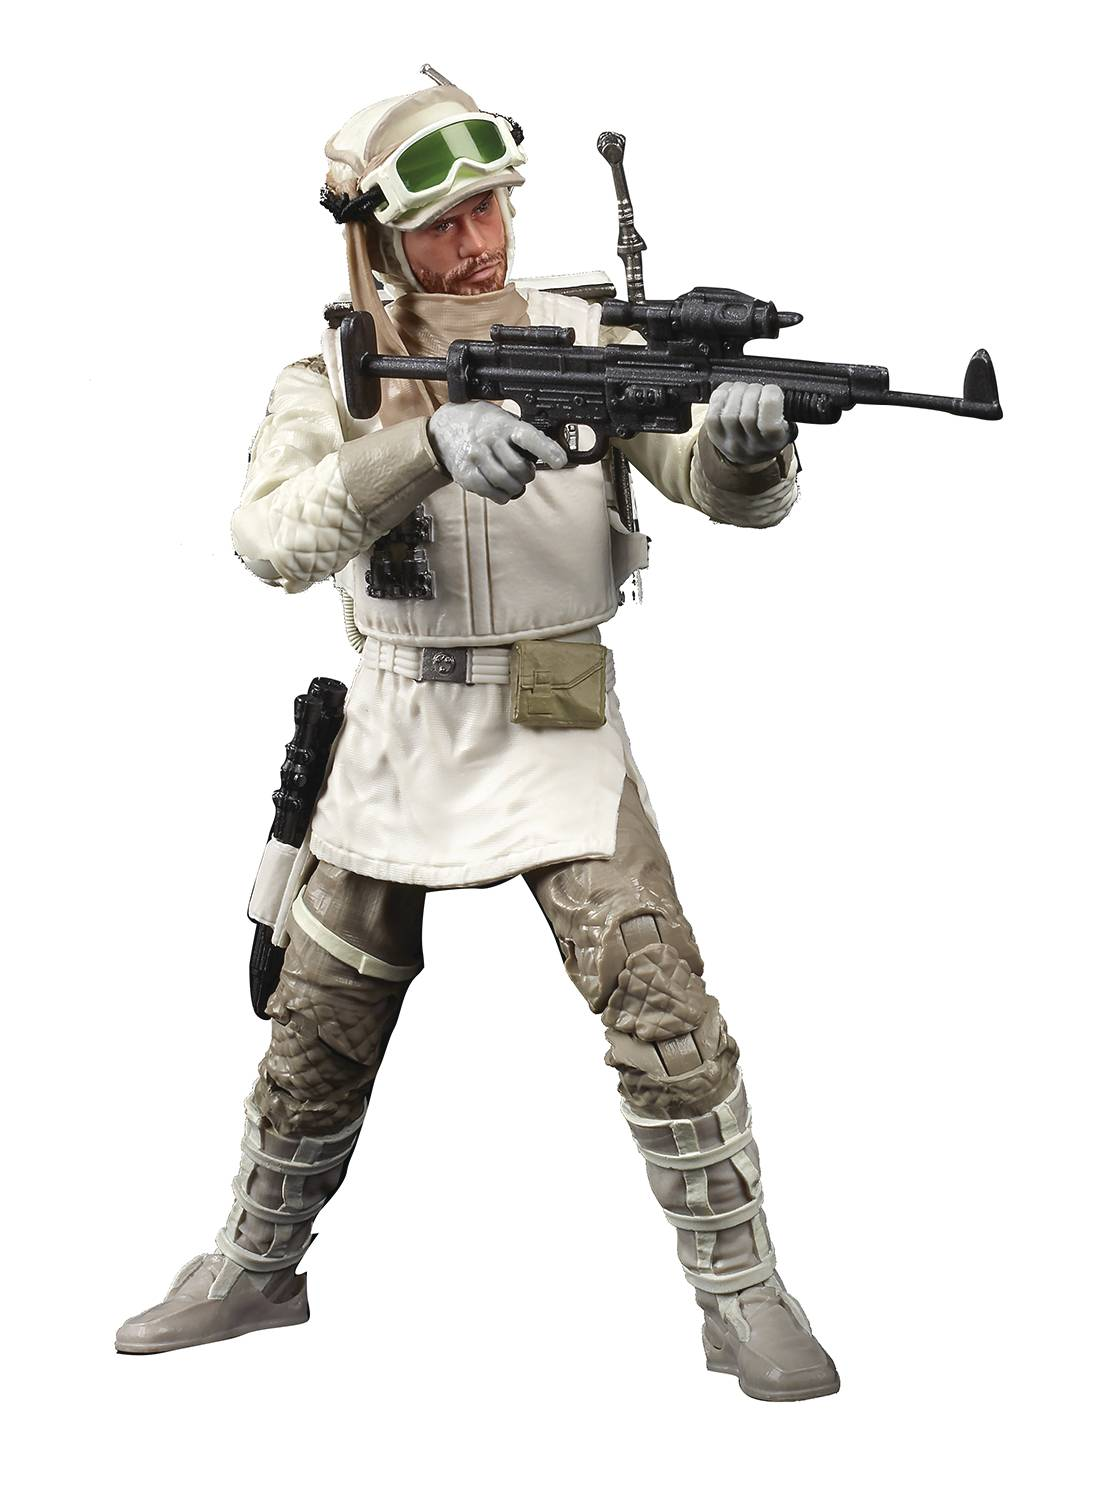 Star Wars - The Black Series - Empire Strikes Back - Hoth Rebel Trooper Action Figure